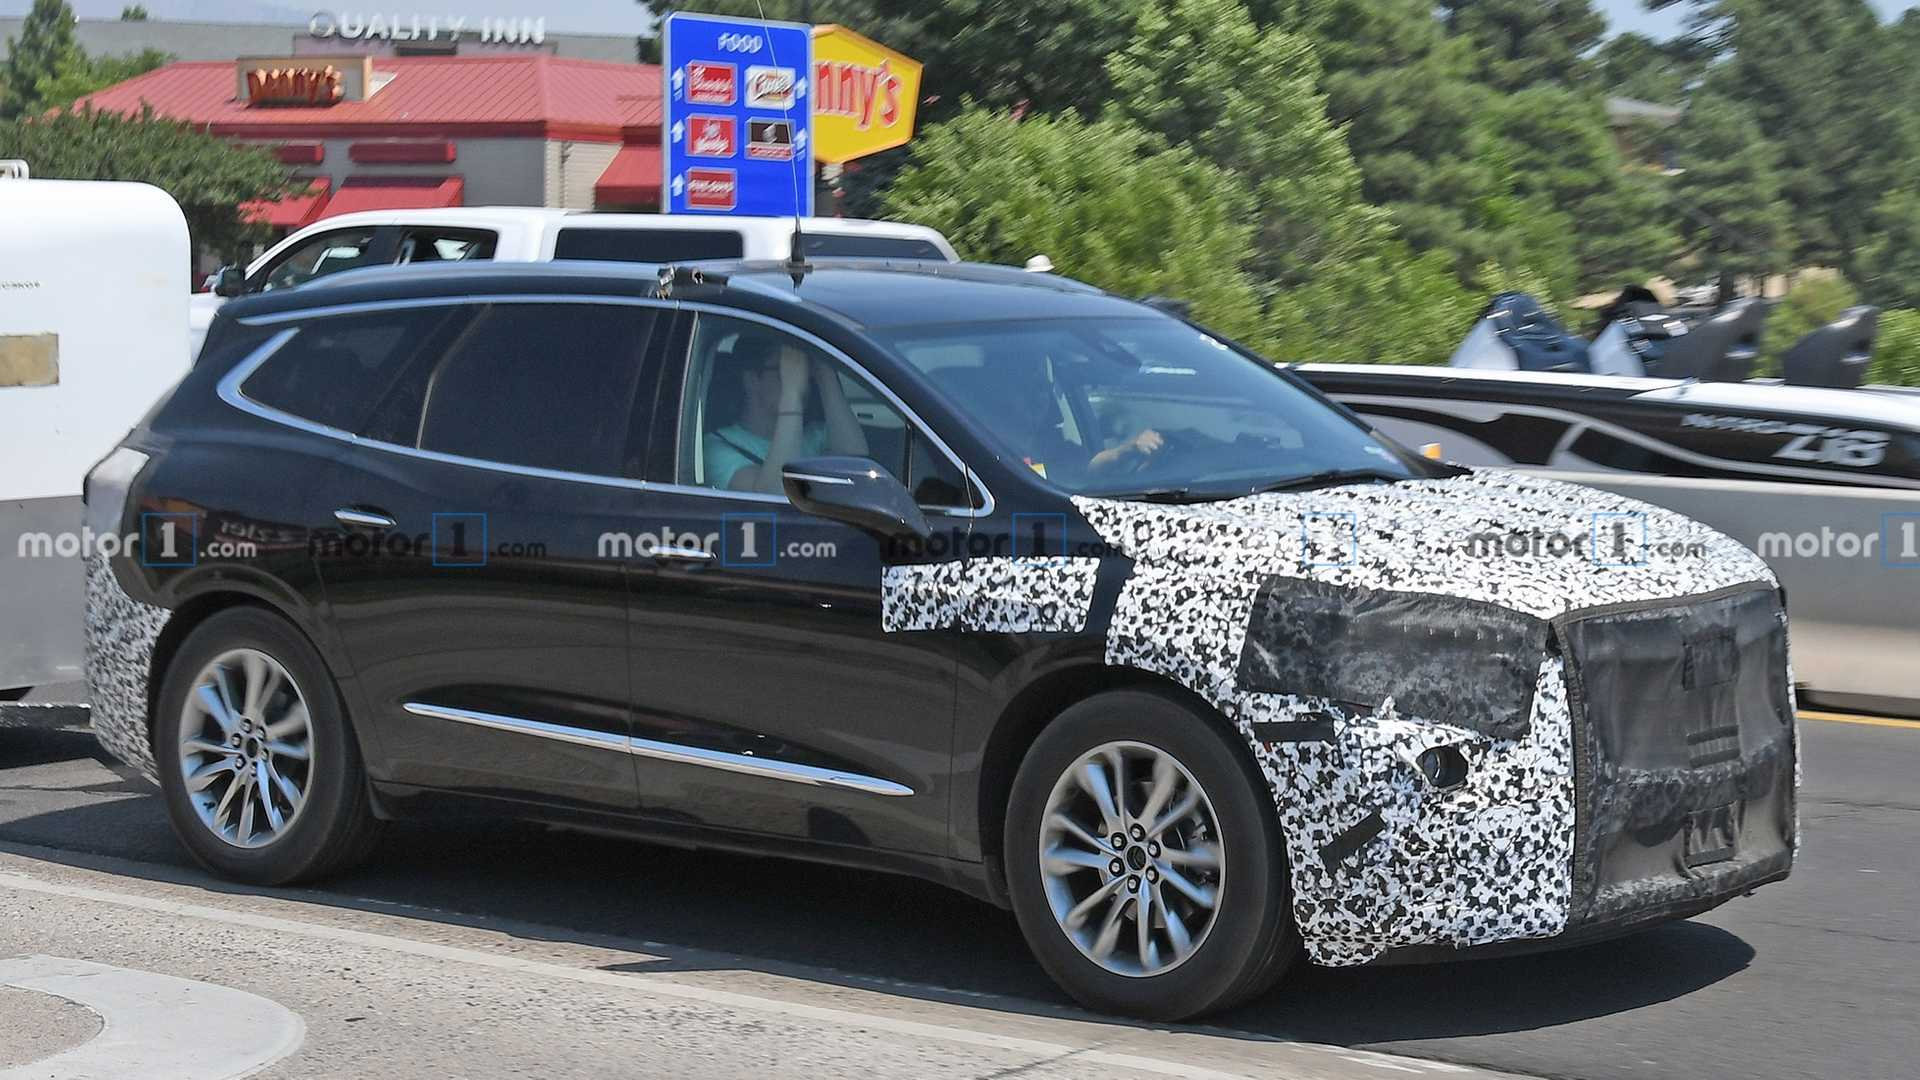 2021 Buick Enclave Spied For The First Time 2022 Buick Enclave Interior Dimensions, Images, Inventory